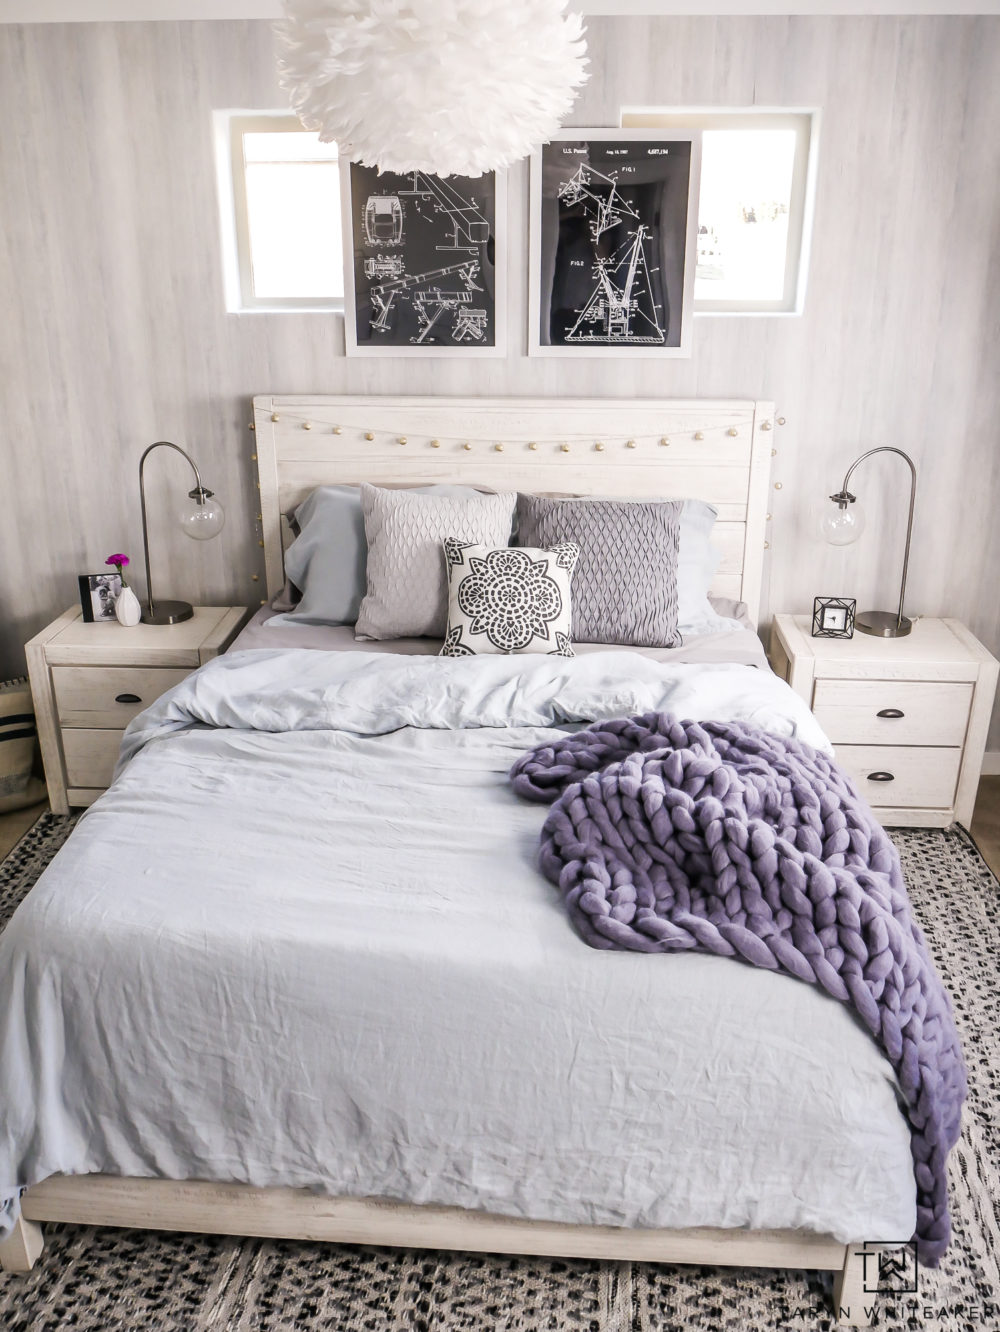 Modern boho girls bedroom with gray, black and white and pops of blue! Love the texture wallpaper and industrial touches.